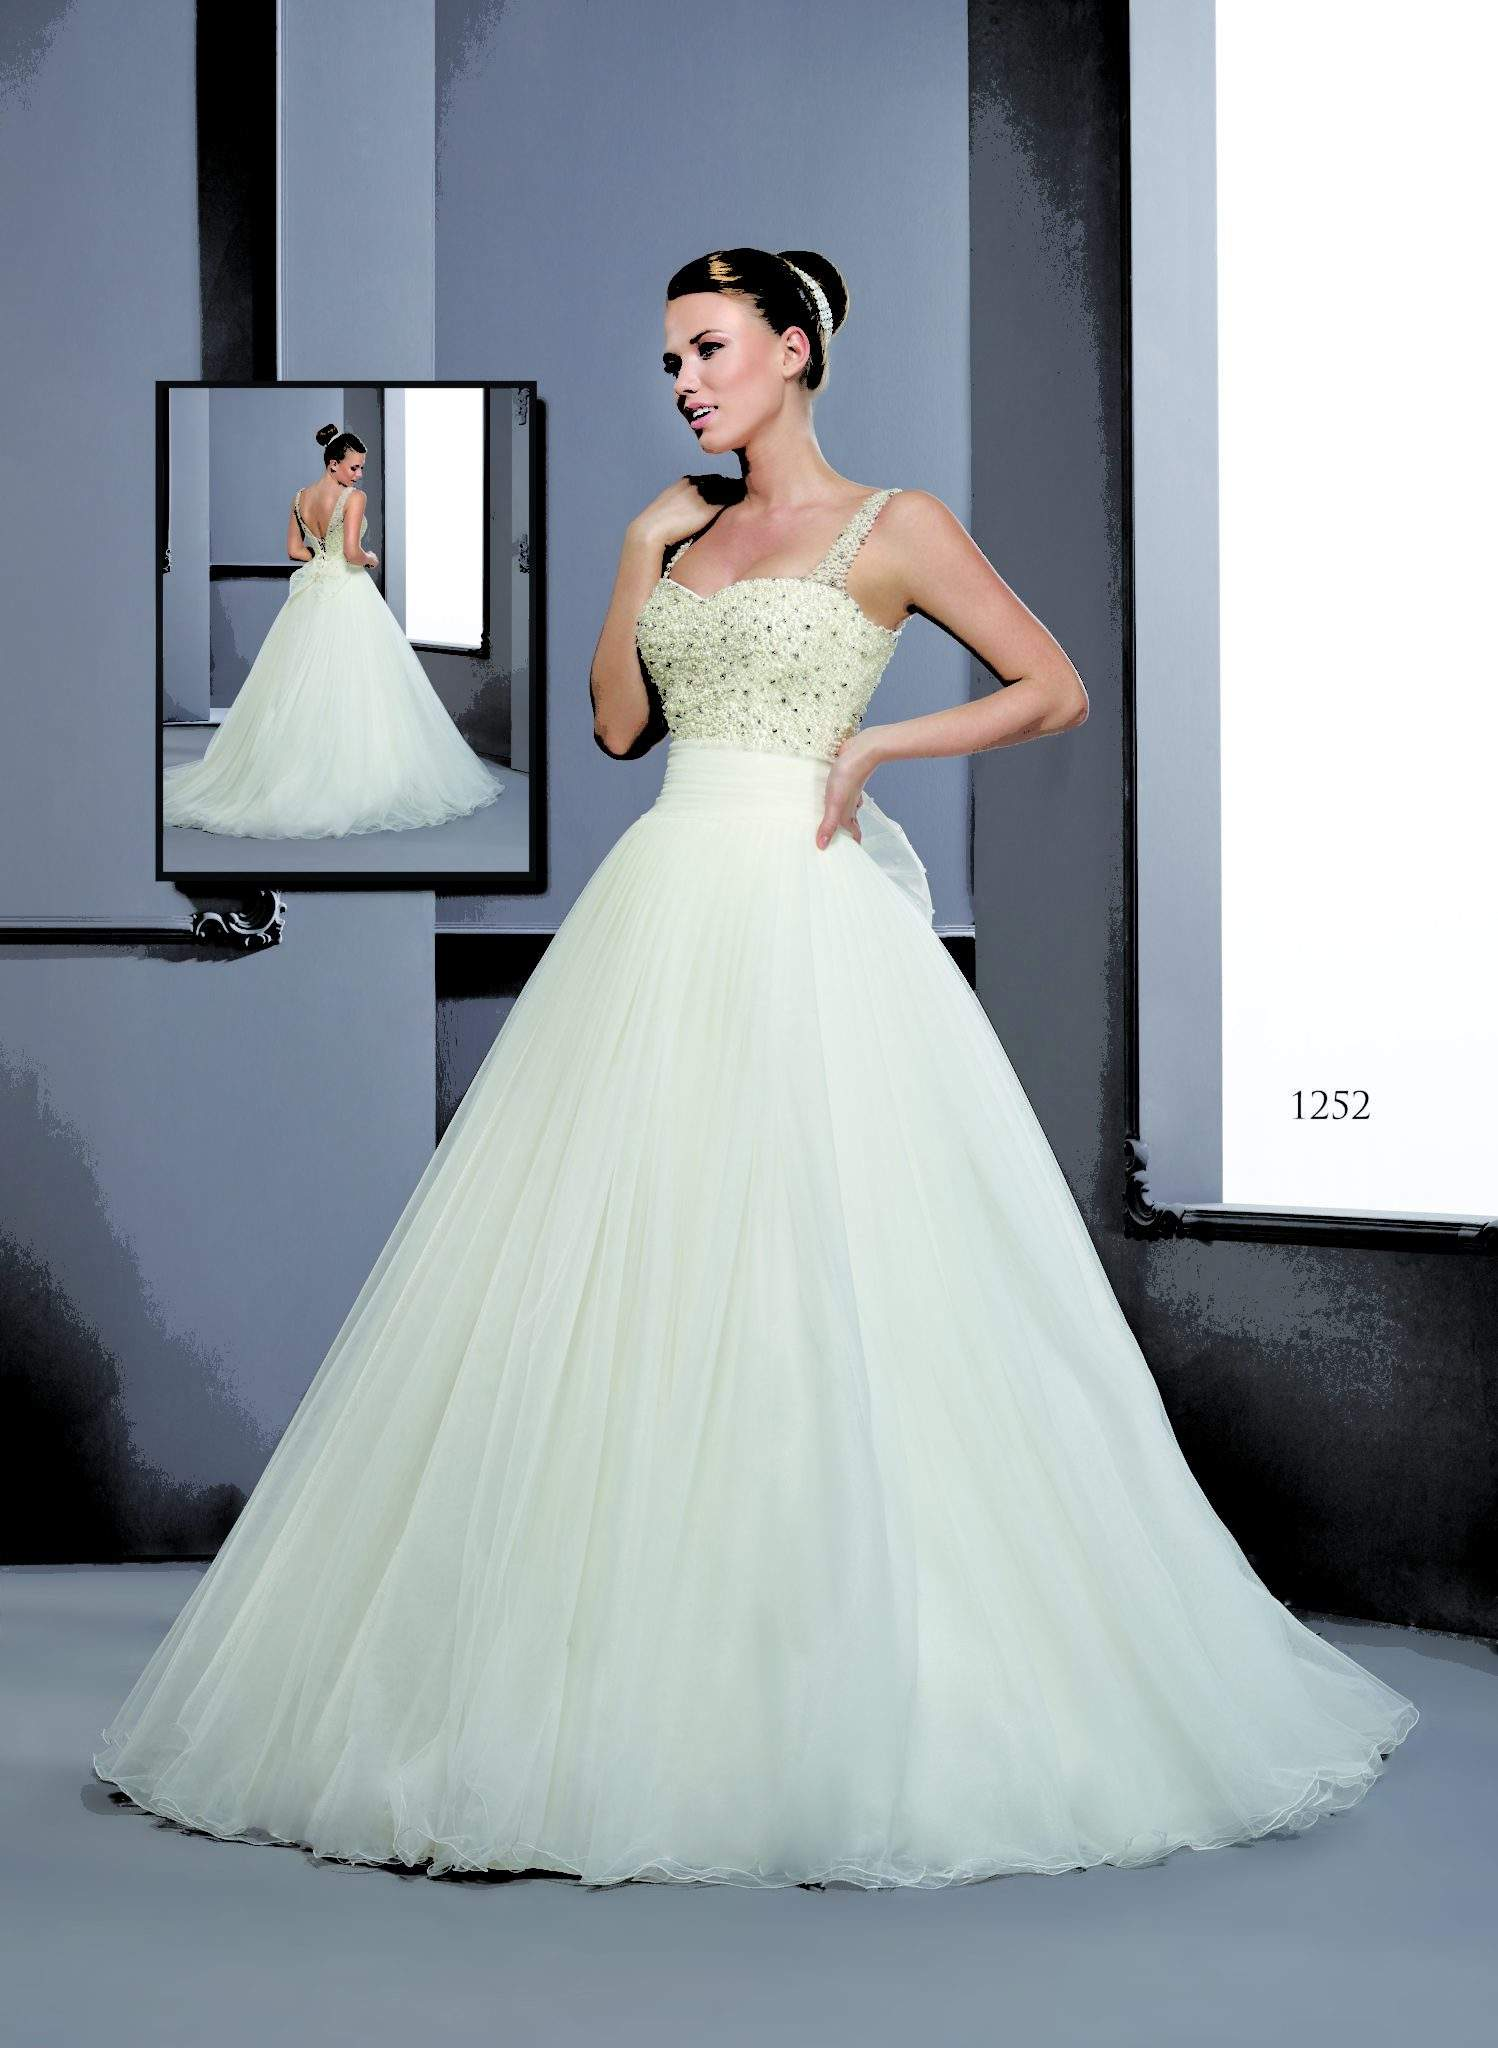 477002186629 Wedding Dresses with Spaghetti Straps - Darius Cordell Fashion Ltd